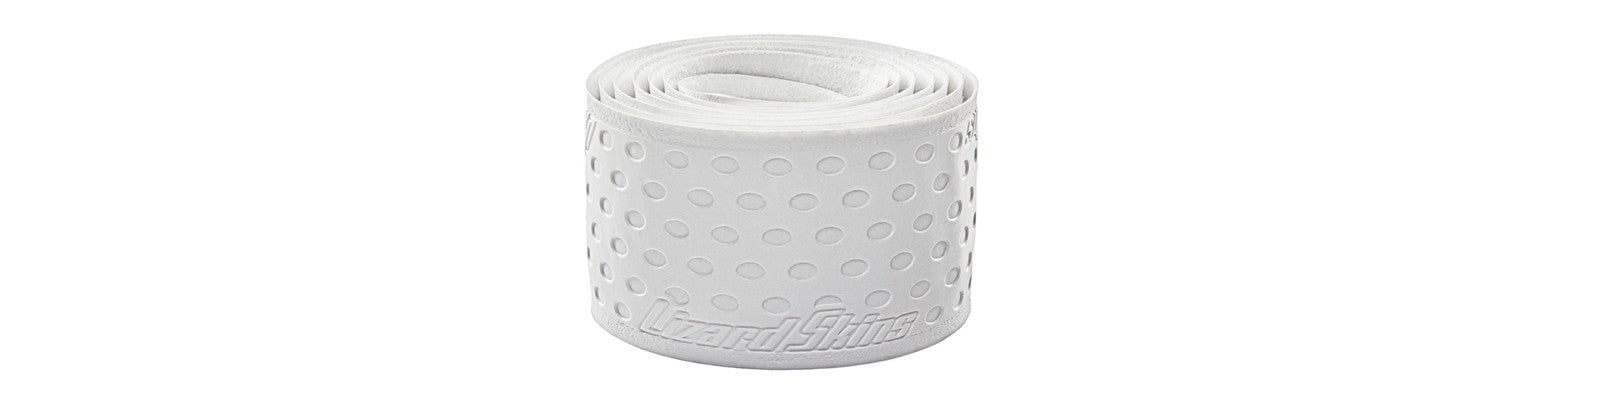 Lizard Skin Bat Wrap - White